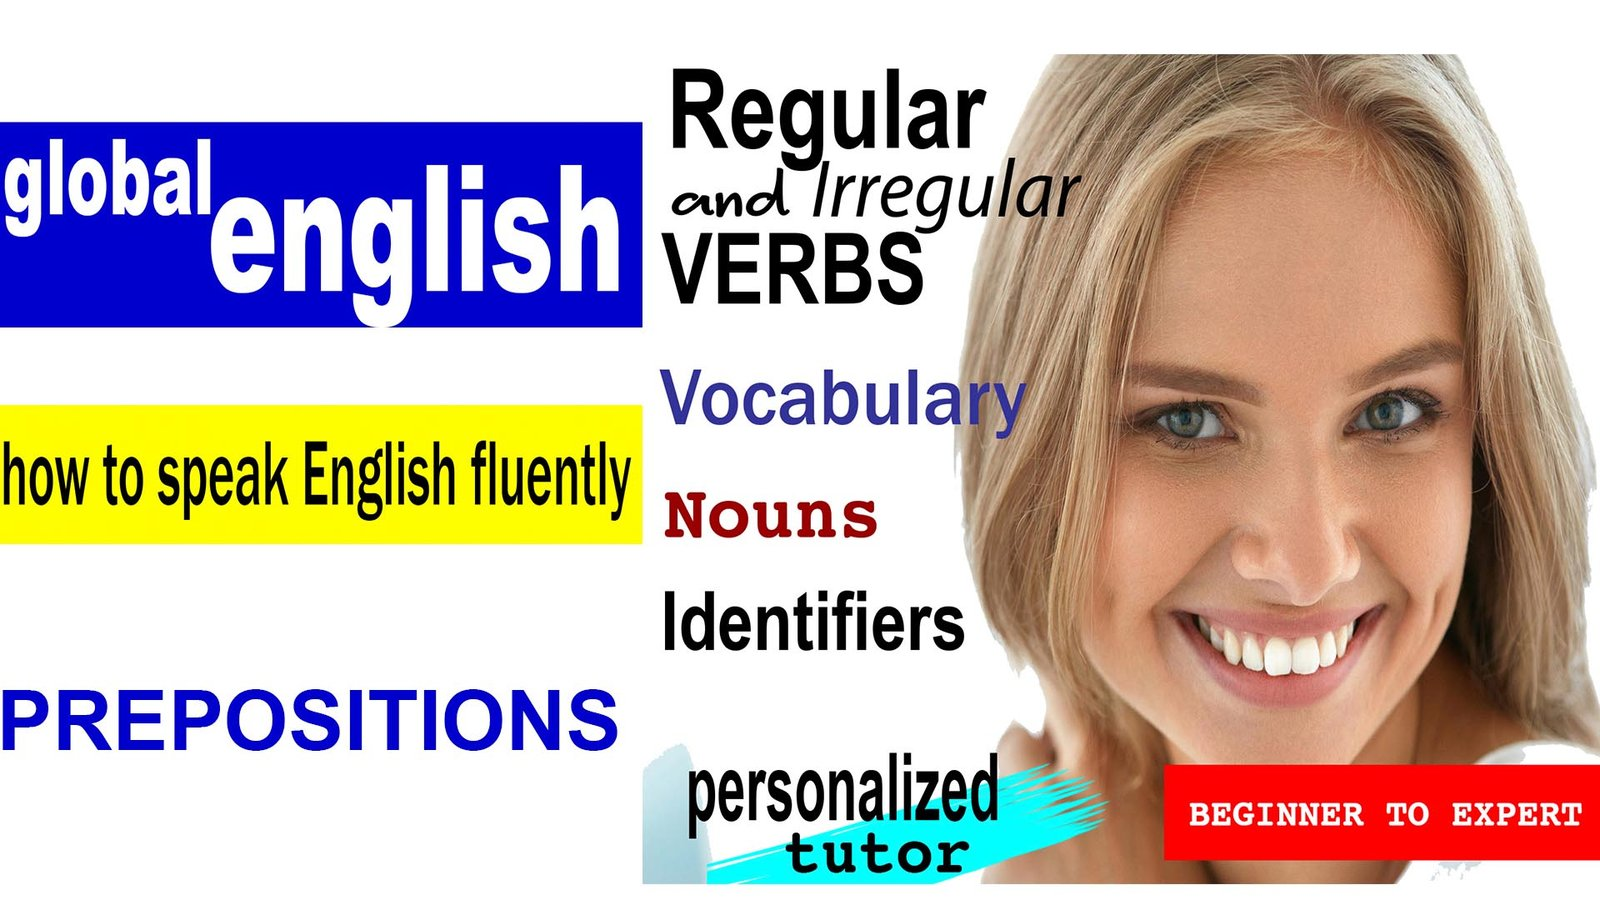 Global English Course 1 Lesson 2: Learn English as a Second Language - Vocabulary, Nouns (people, places, things) Regular & Irregular Verbs, Identifiers (this/that/these/those), Prepositions